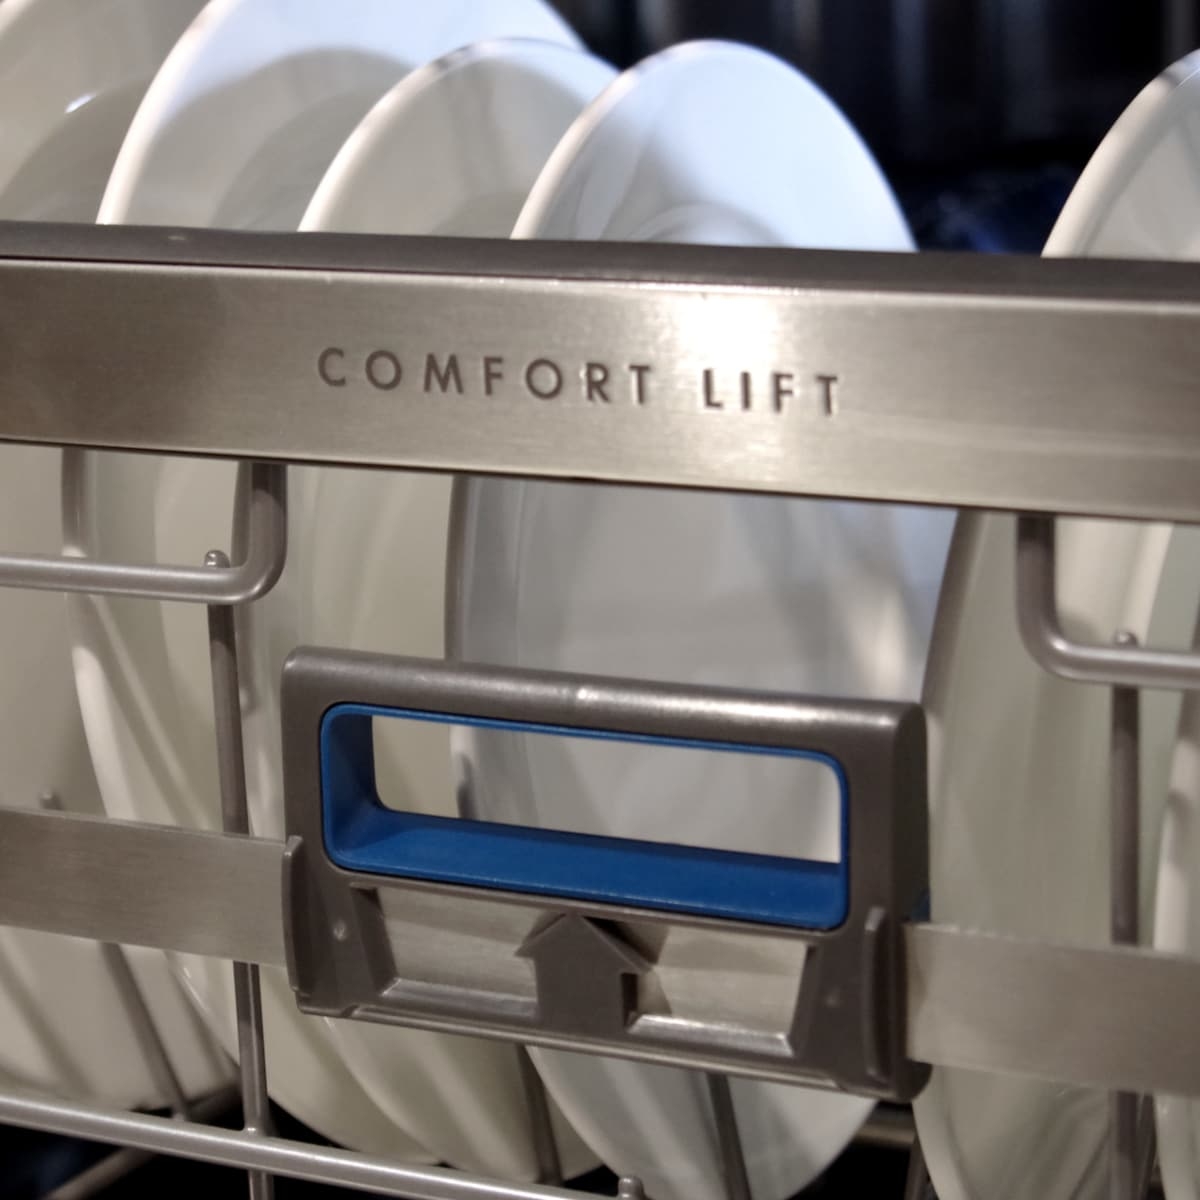 Electrolux dishwasher helps you load, unload dishes - Reviewed